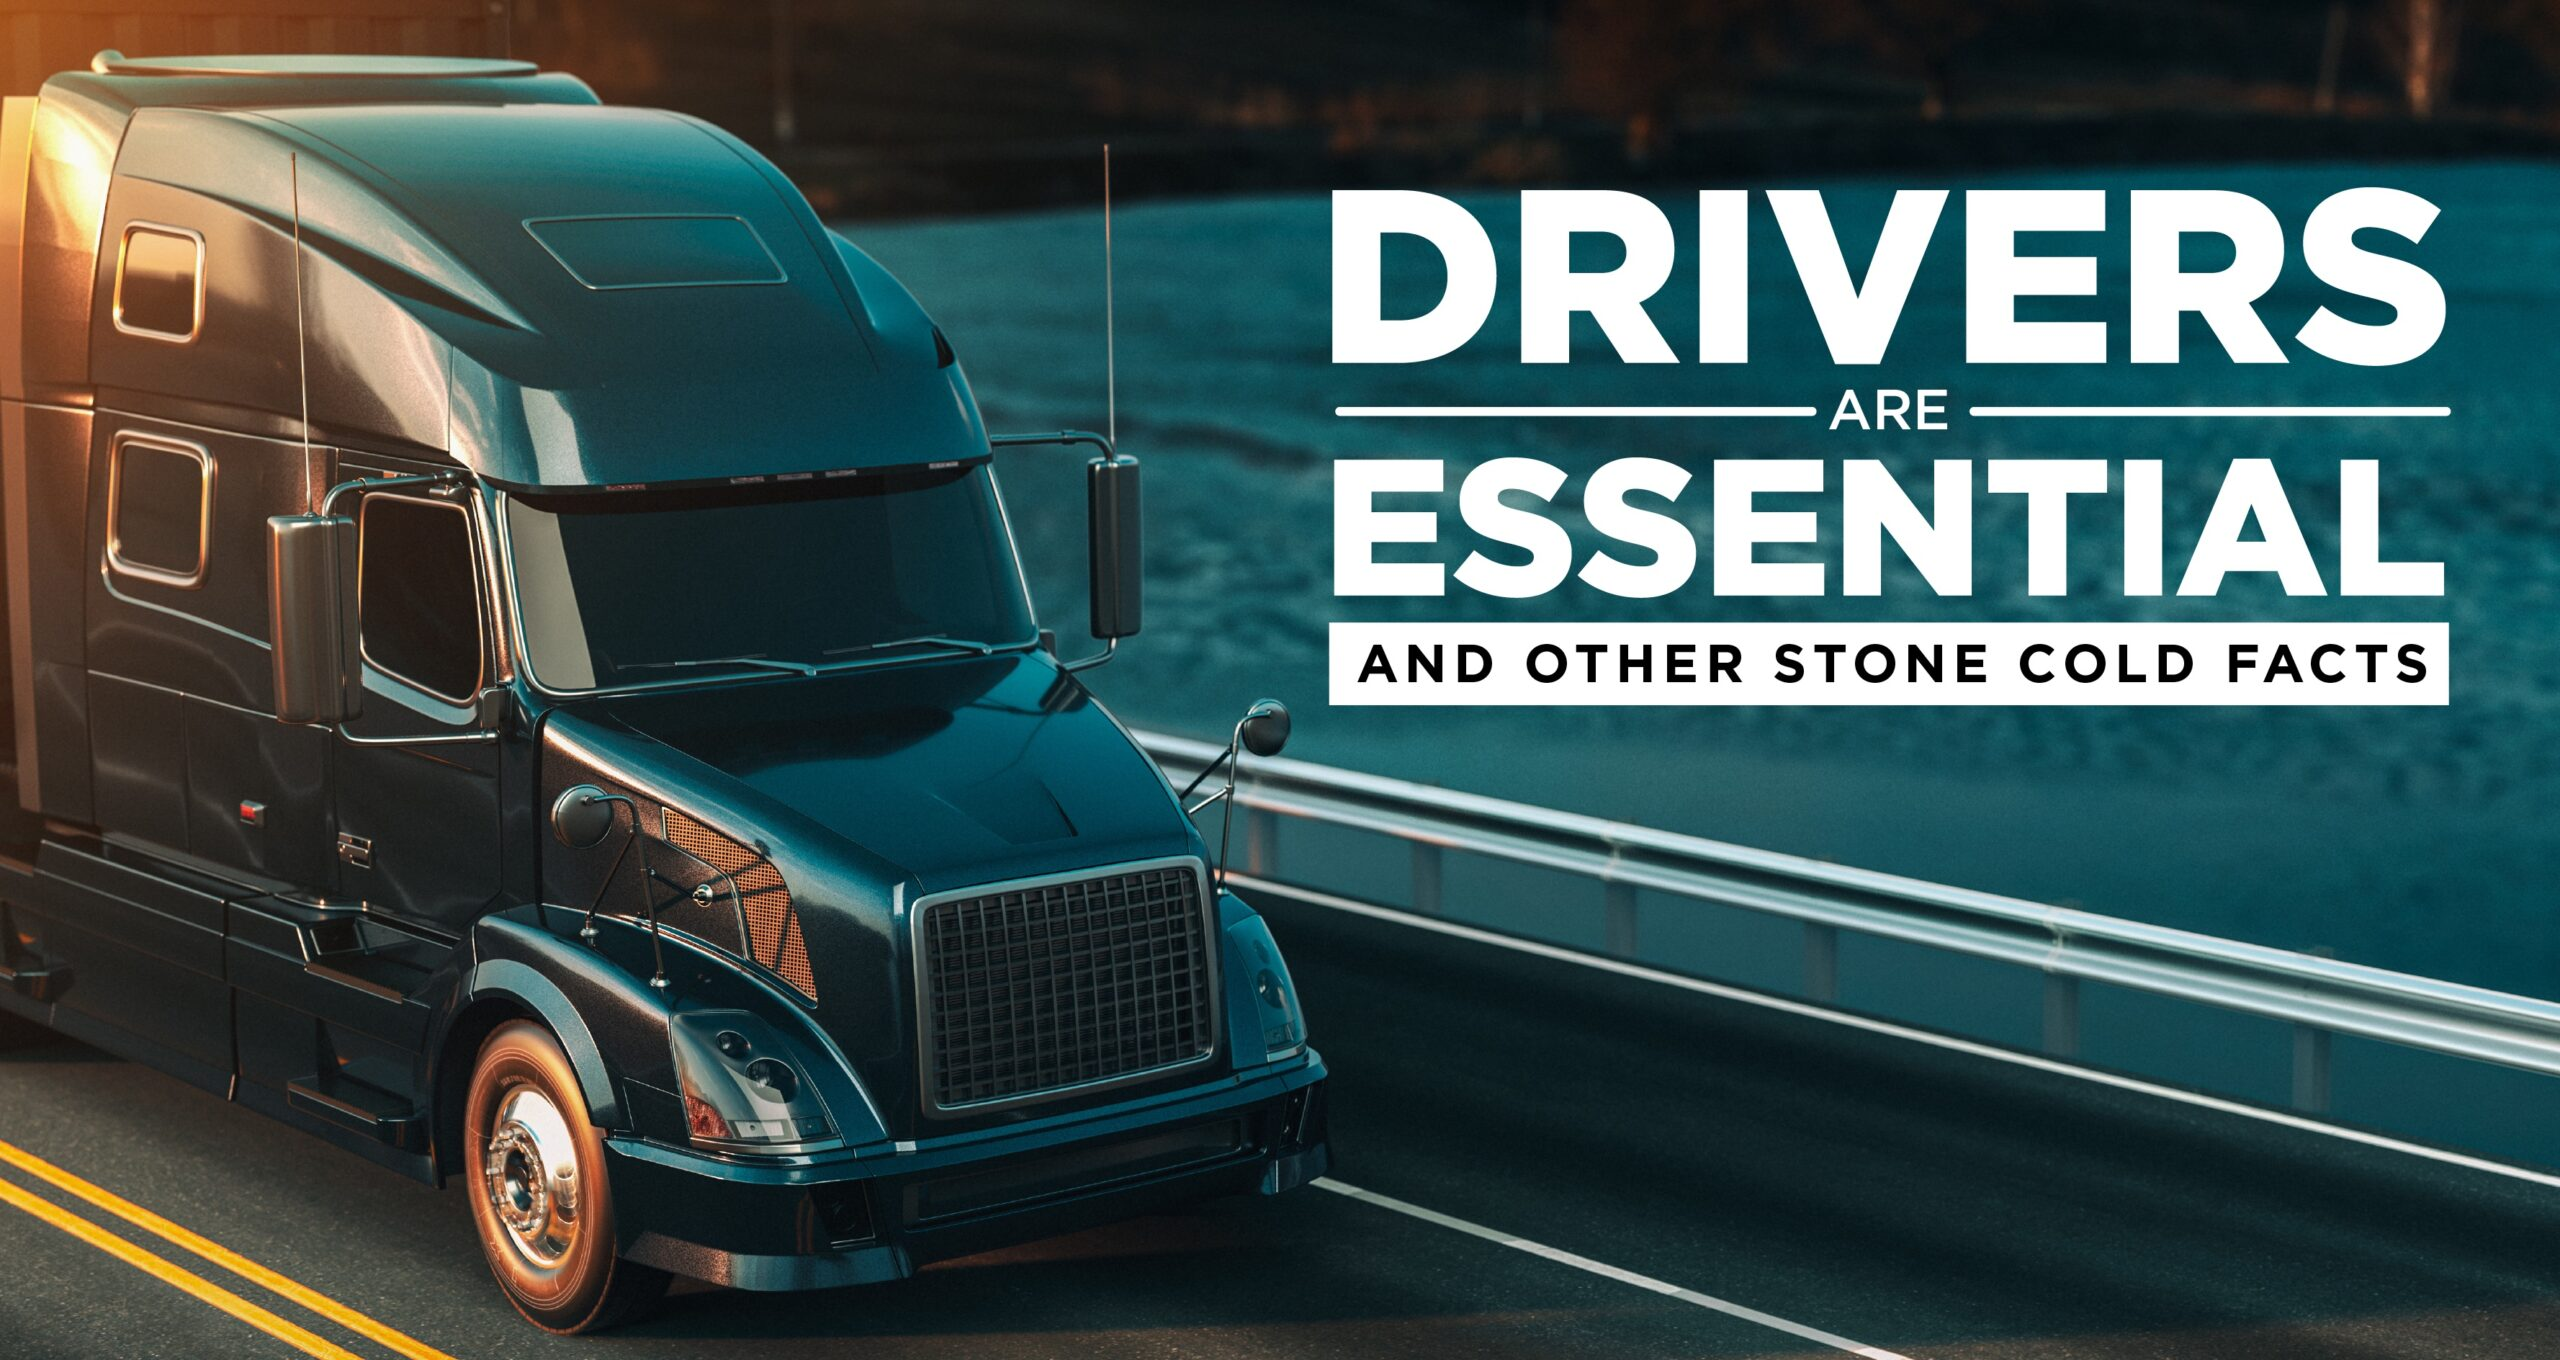 truck driving on highway over bridge with text drivers are essential and other stone cold facts